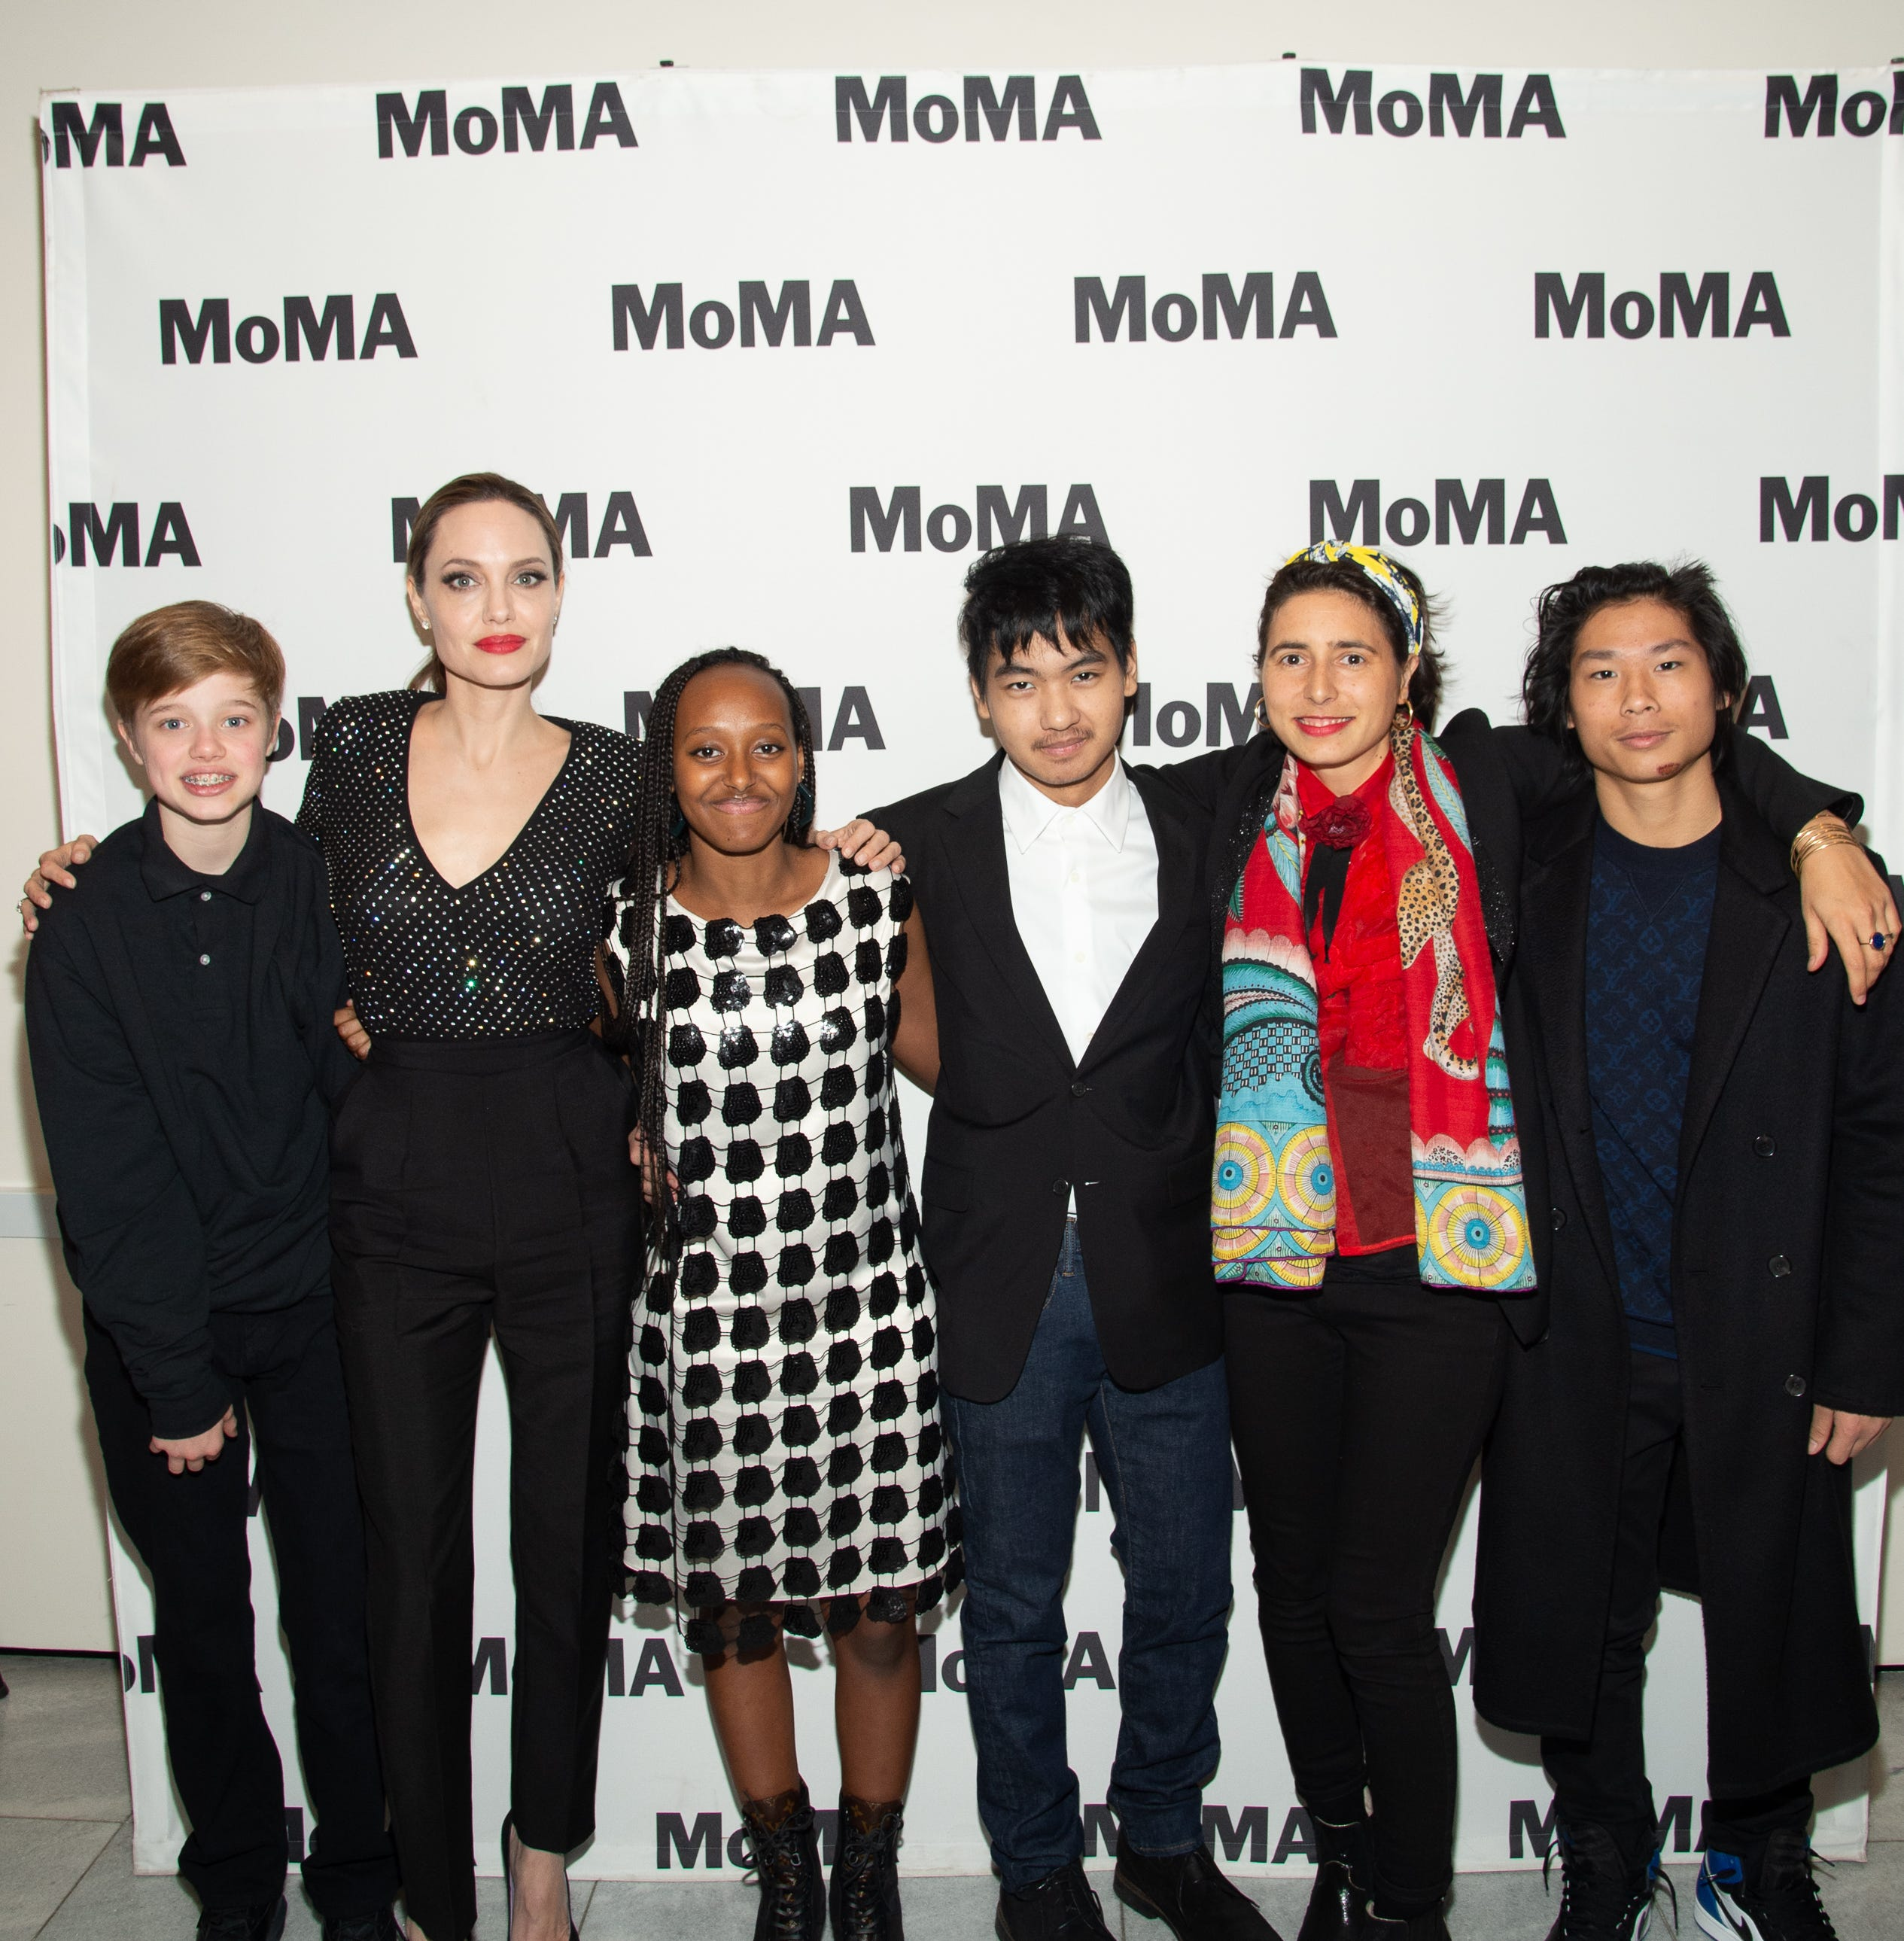 Knox Léon Jolie-Pitt, Angelina Jolie, Zahara Marley Jolie-Pitt, Pax Thien Jolie-Pitt, Prune Nourry and Maddox Chivan Jolie-Pitt attend the Opening Night of MoMA's Doc Fortnight Premiere of Prune Nourry's Serendipity on Feb. 21, 2019 in New York.